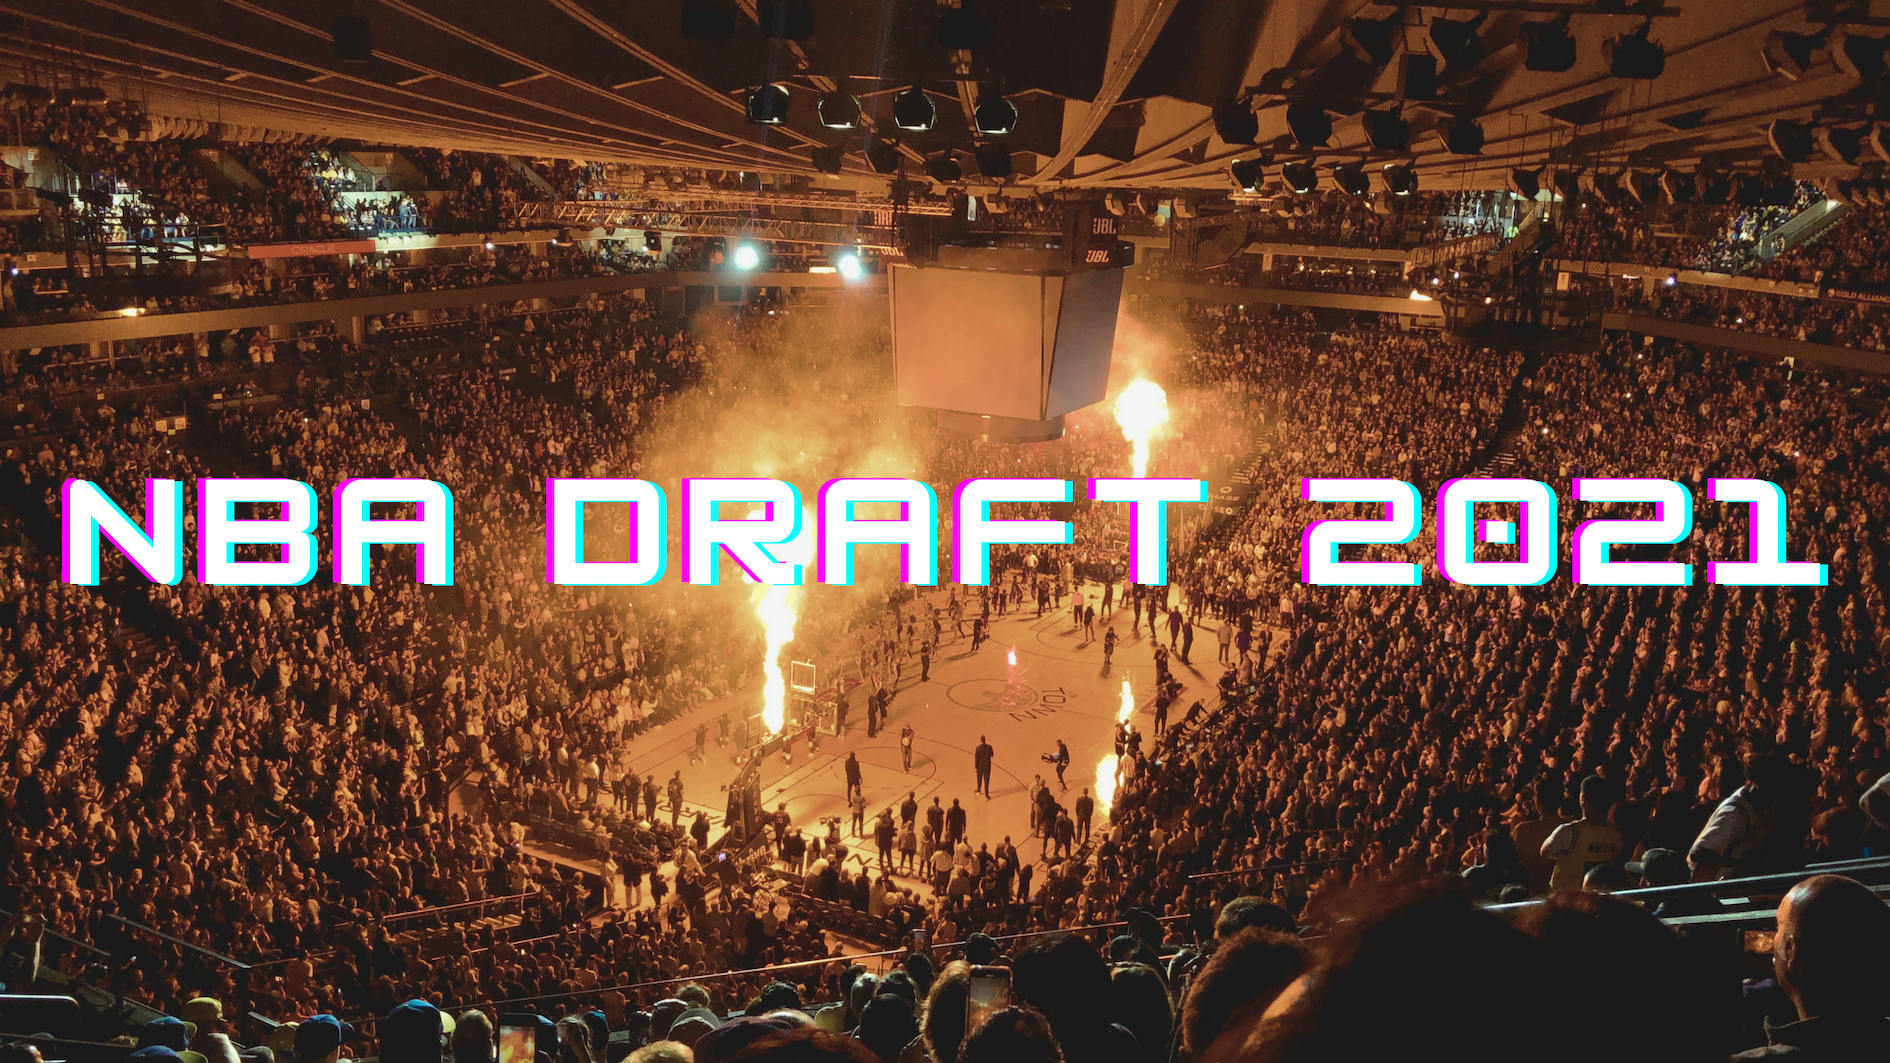 NBA Top Shot is doubling down on upping the fan experience by unveiling an all-new NBA Draft 2021: Access Unlocked - a once-in-a-lifetime Draft Day experience.